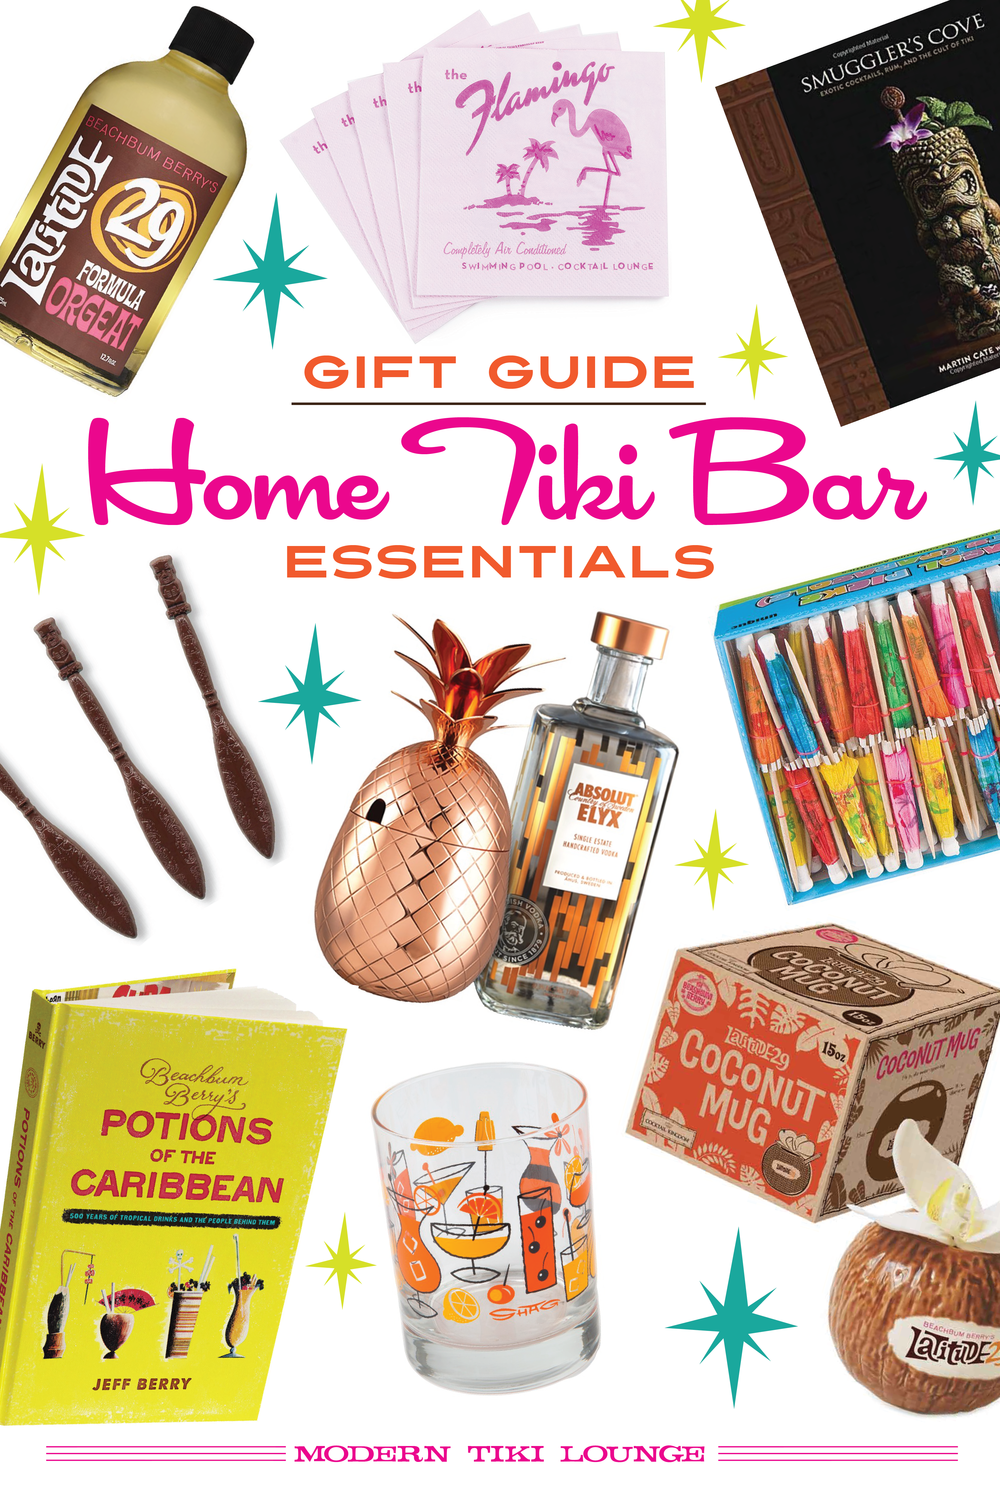 home-tiki-bar-essentials.jpg